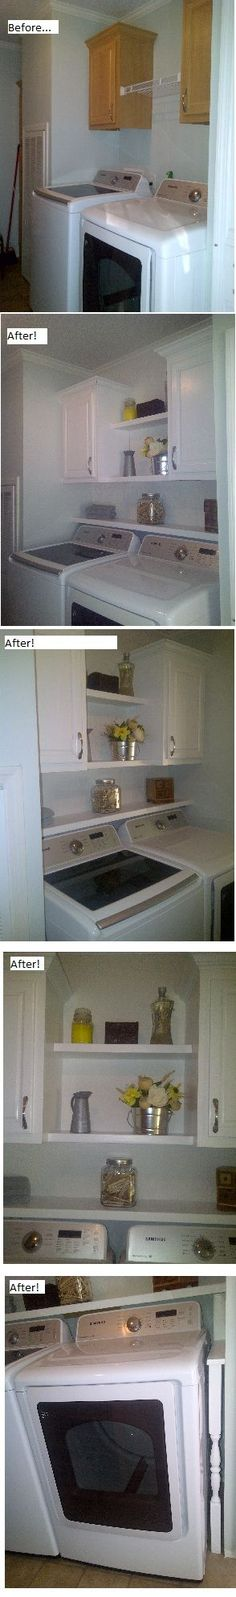 Laundry Room Updo! Paint the cabinets then add wood shelving right above the washer and dryer! This keeps dust and other things(socks) from falling behind them, plus added storage! I also wanted to enclose the sides of the washer and dryer to prevent anything falling between them and the wall. I took porch spindles and made a custom fit to the size of my set and secured it to the shelf above them. I painted it all white and added some decor and added textured wallpaper as a backsplash-LOVE!